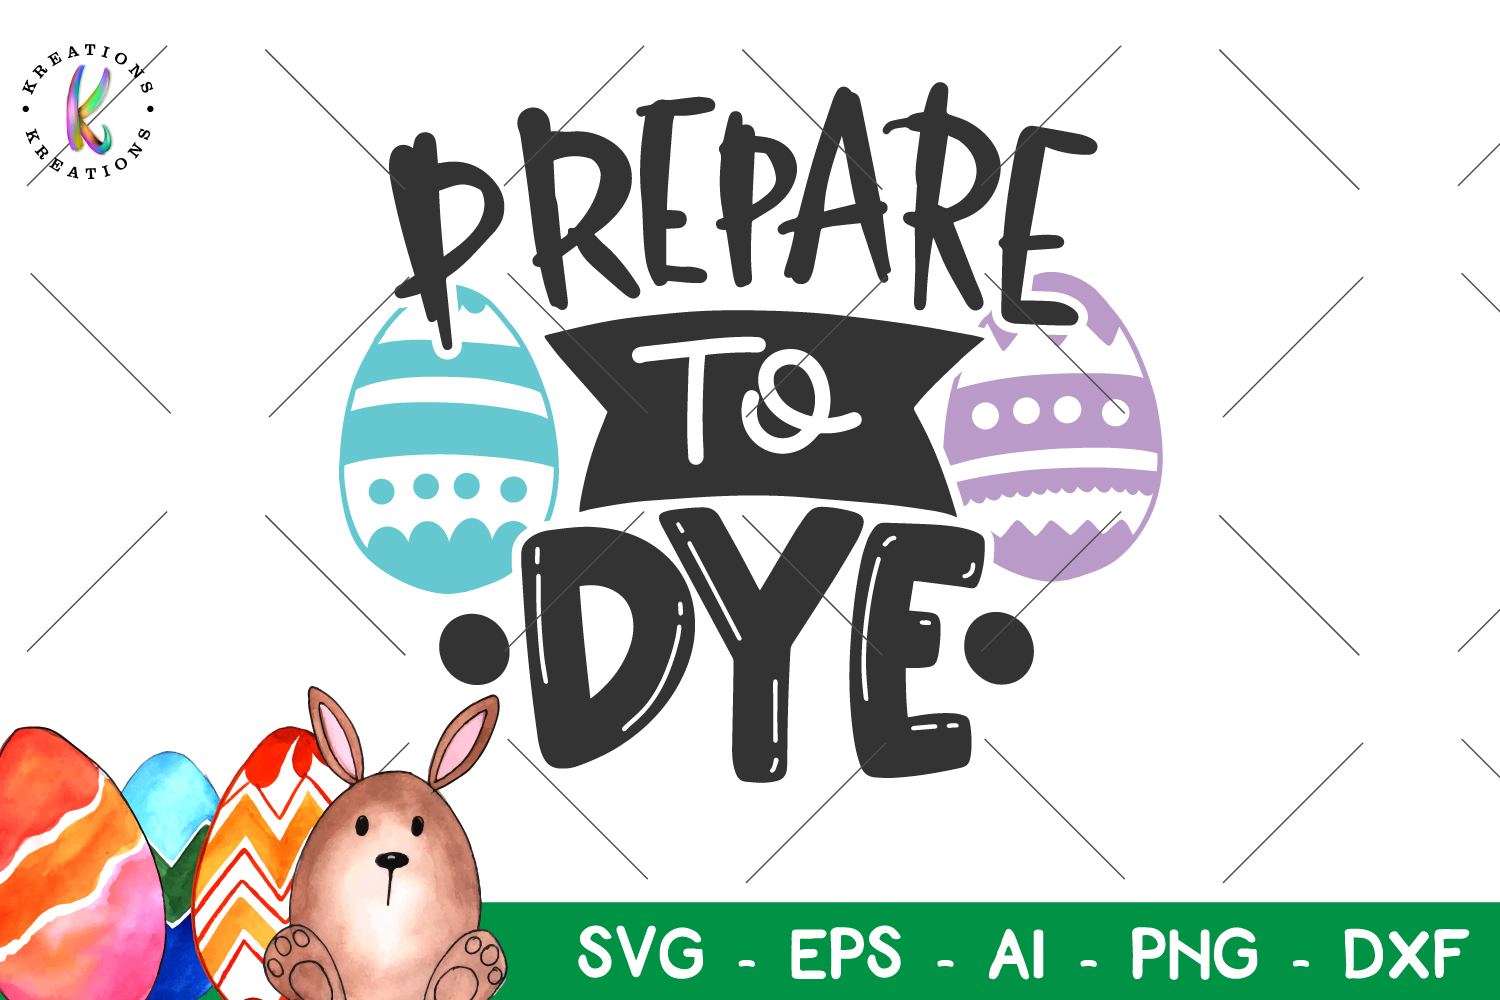 Easter svg Prepare to Dye svg Dye easter eggs pun funny example image 1